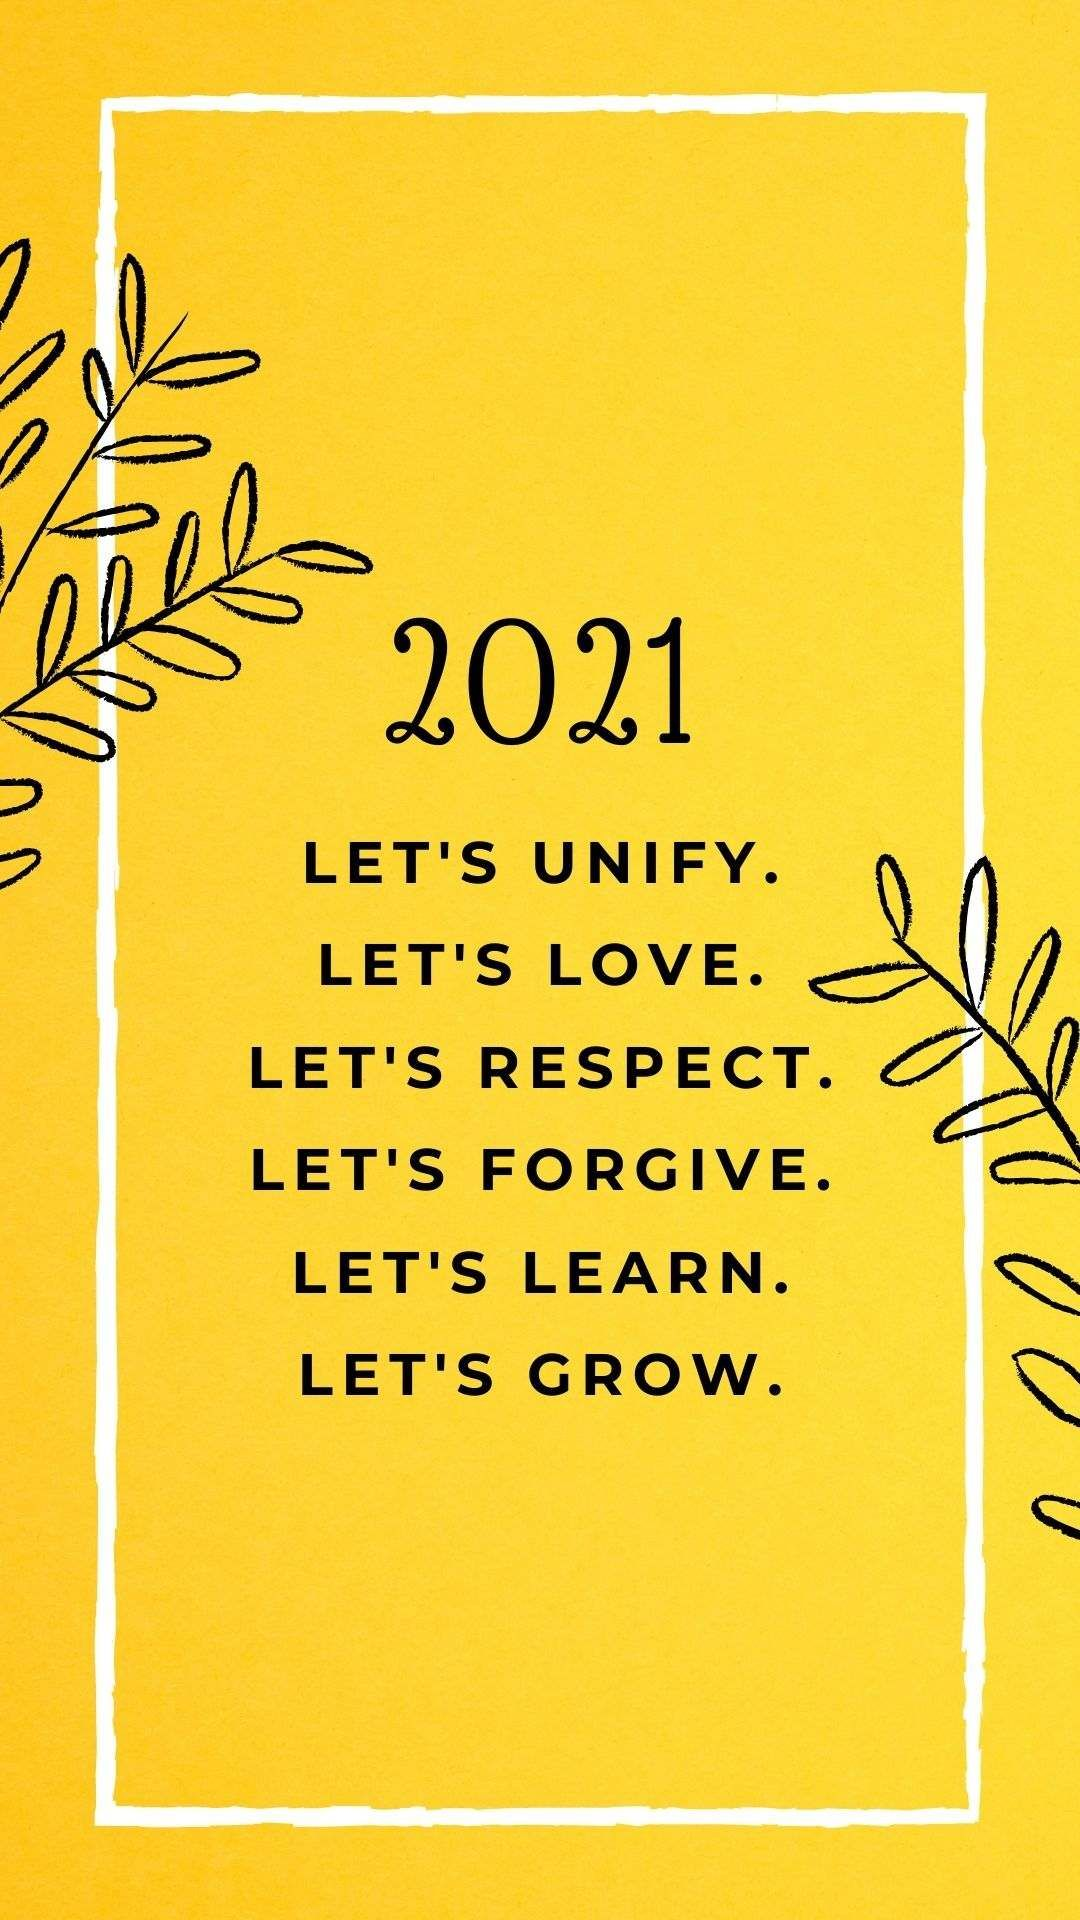 New Year Learning Quotes 2021 Motivation